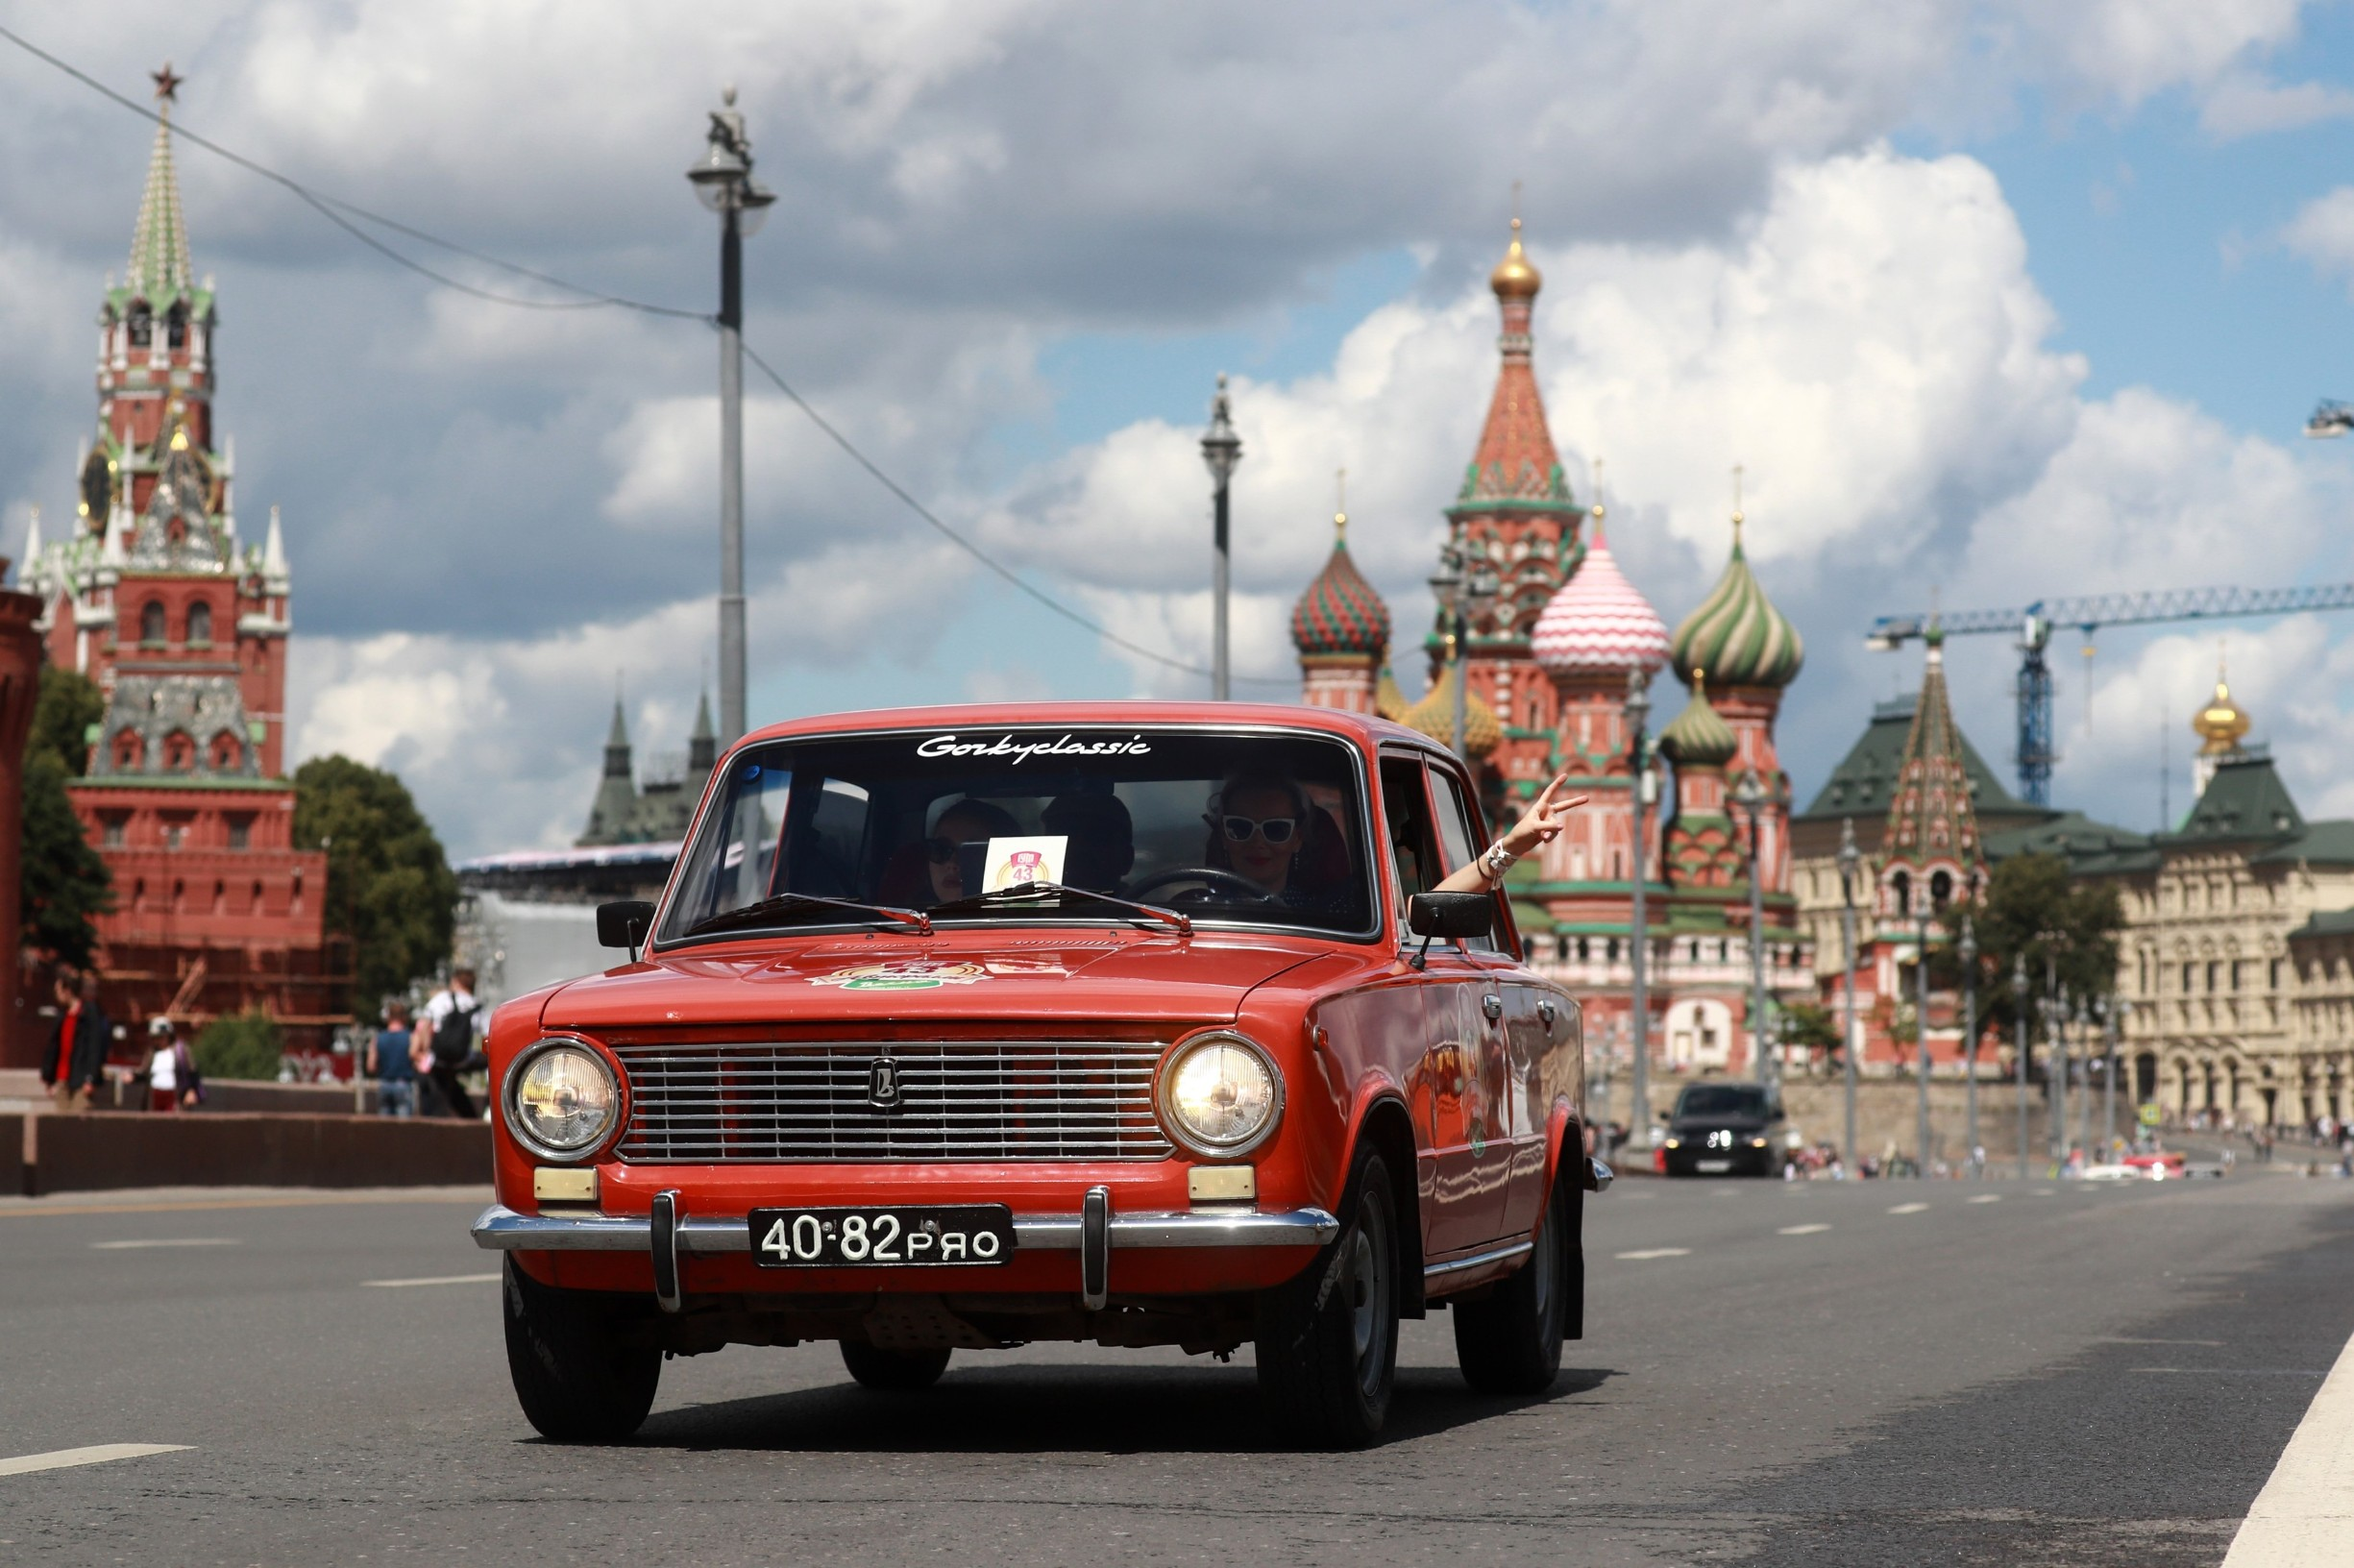 MOSCOW, RUSSIA - JULY 23, 2017: A VAZ-2101 car takes part in the 2017 GUM Motor Rally of retro cars in central Moscow. Sergei Fadeichev/TASS, Image: 342778953, License: Rights-managed, Restrictions: , Model Release: no, Credit line: Sergei Fadeichev / TASS / Profimedia